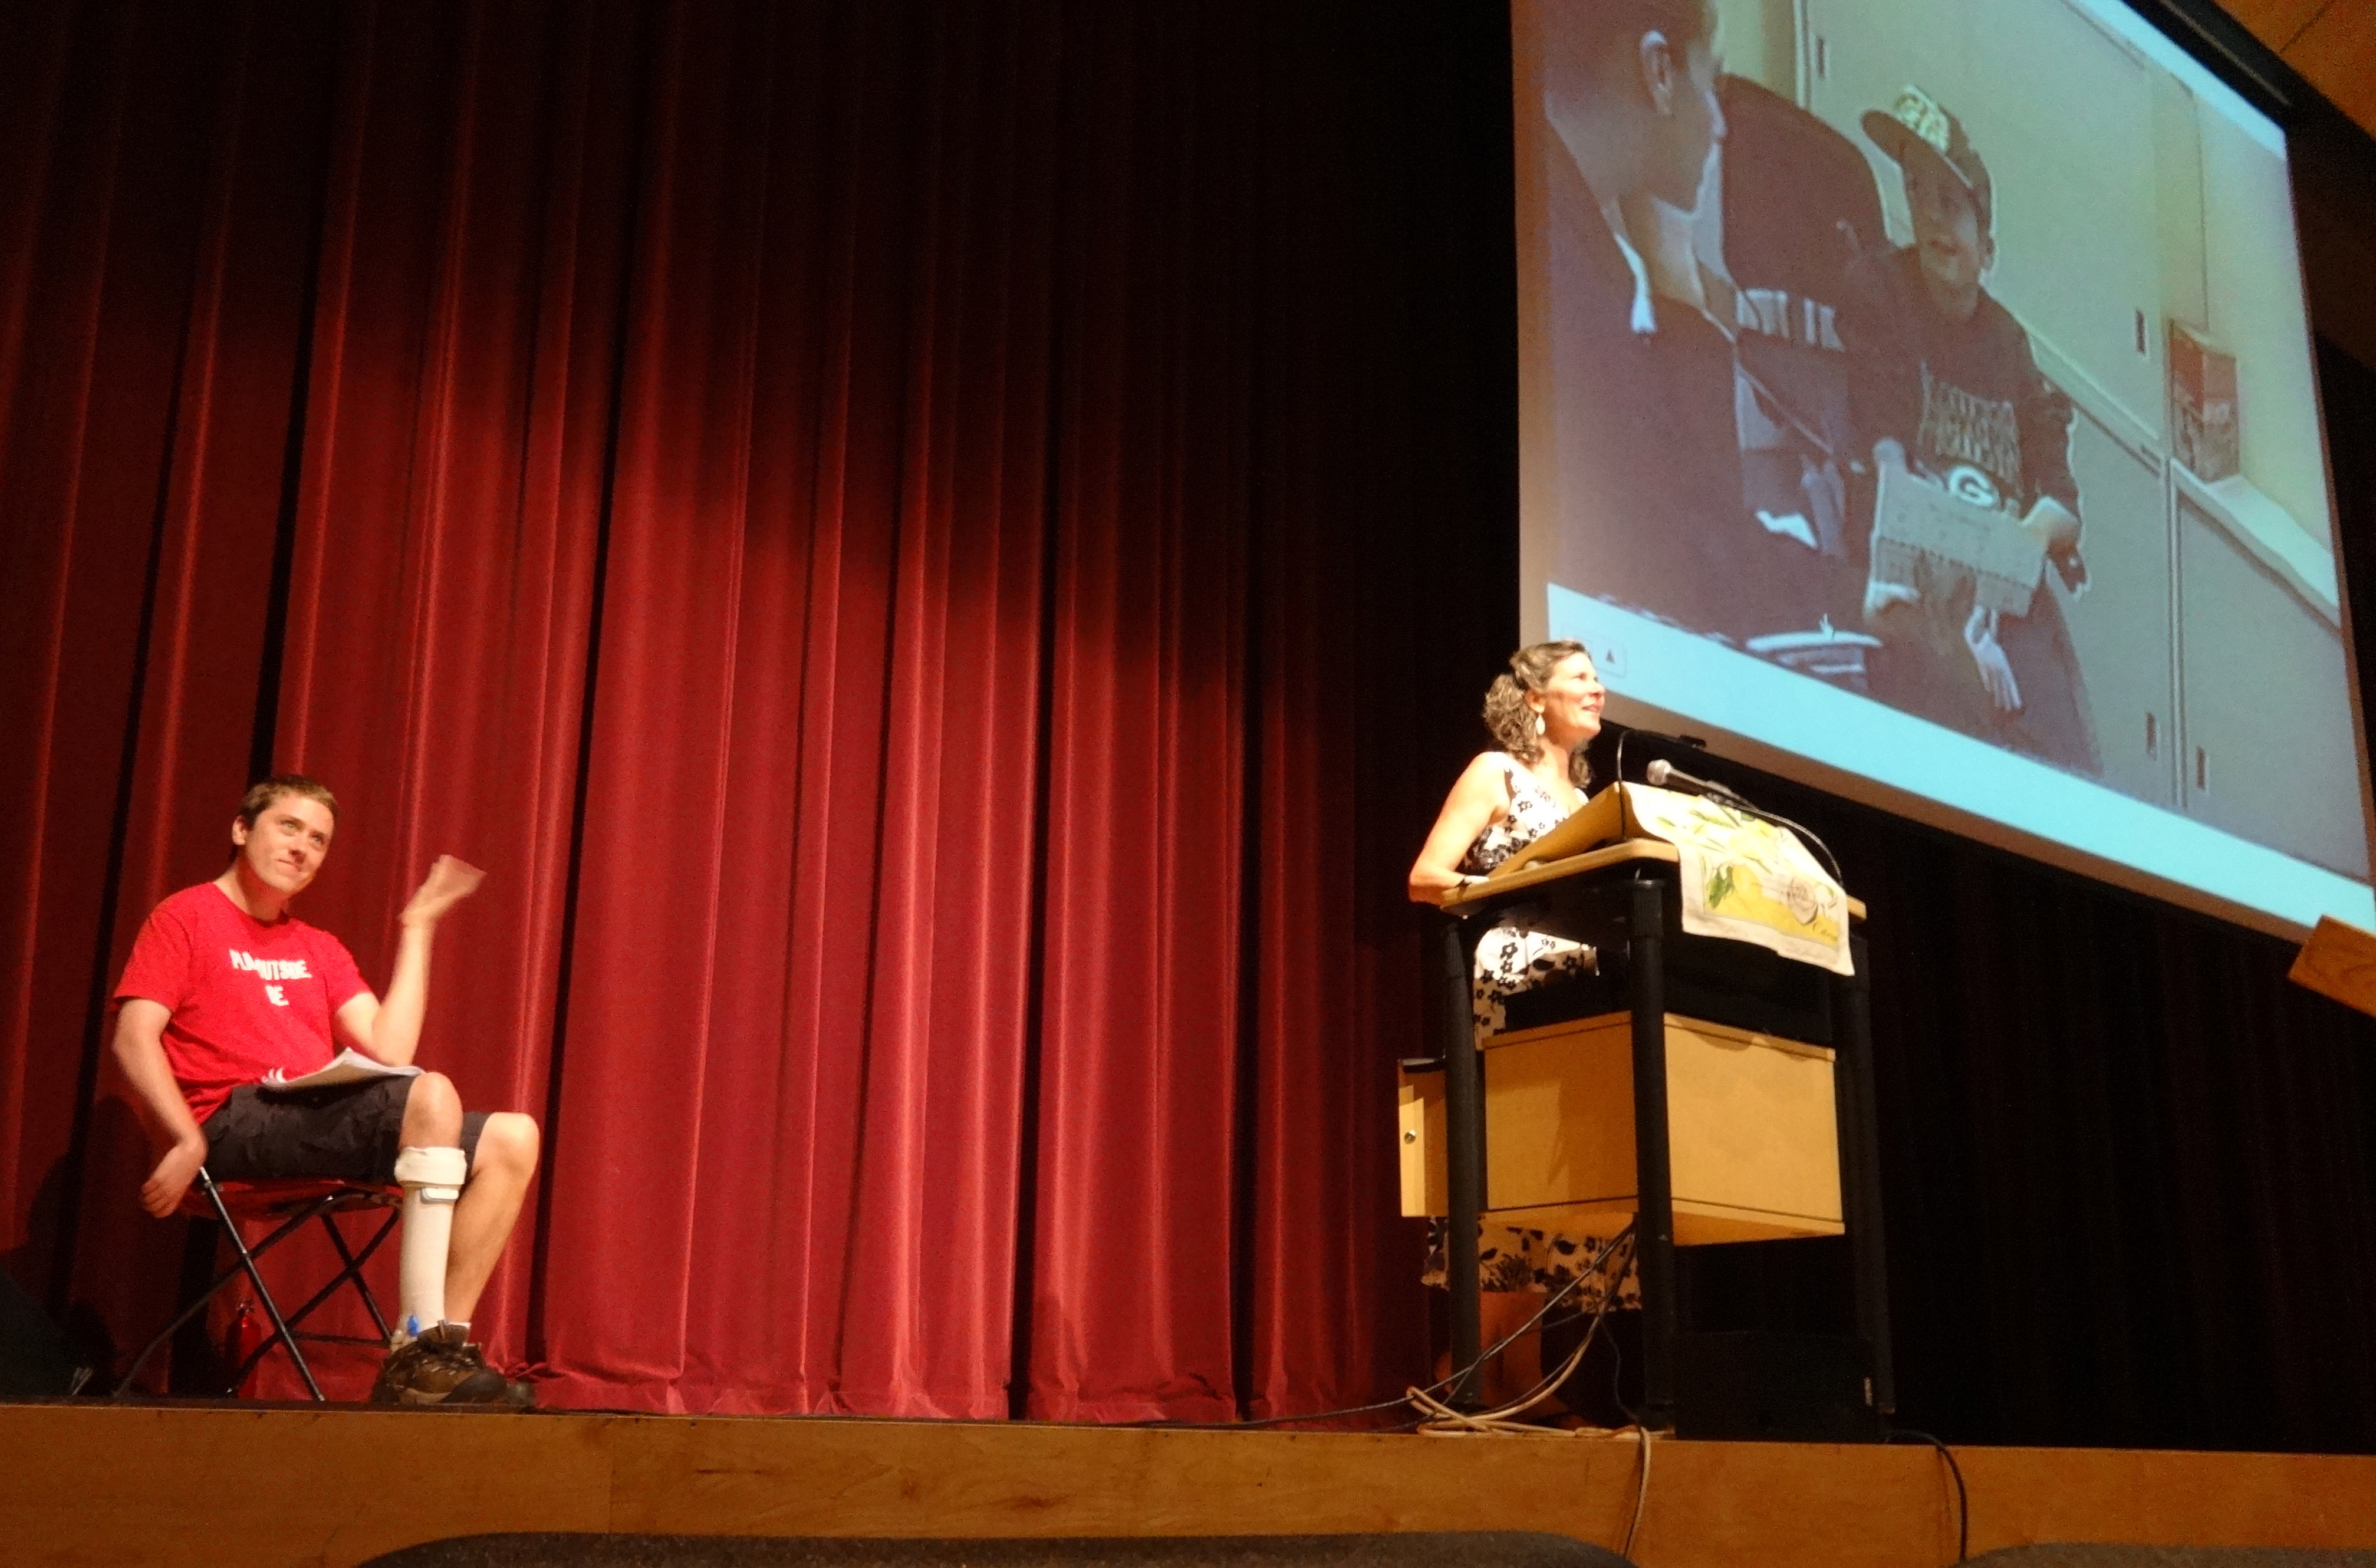 Mother Son Inspirational Speaking Duo